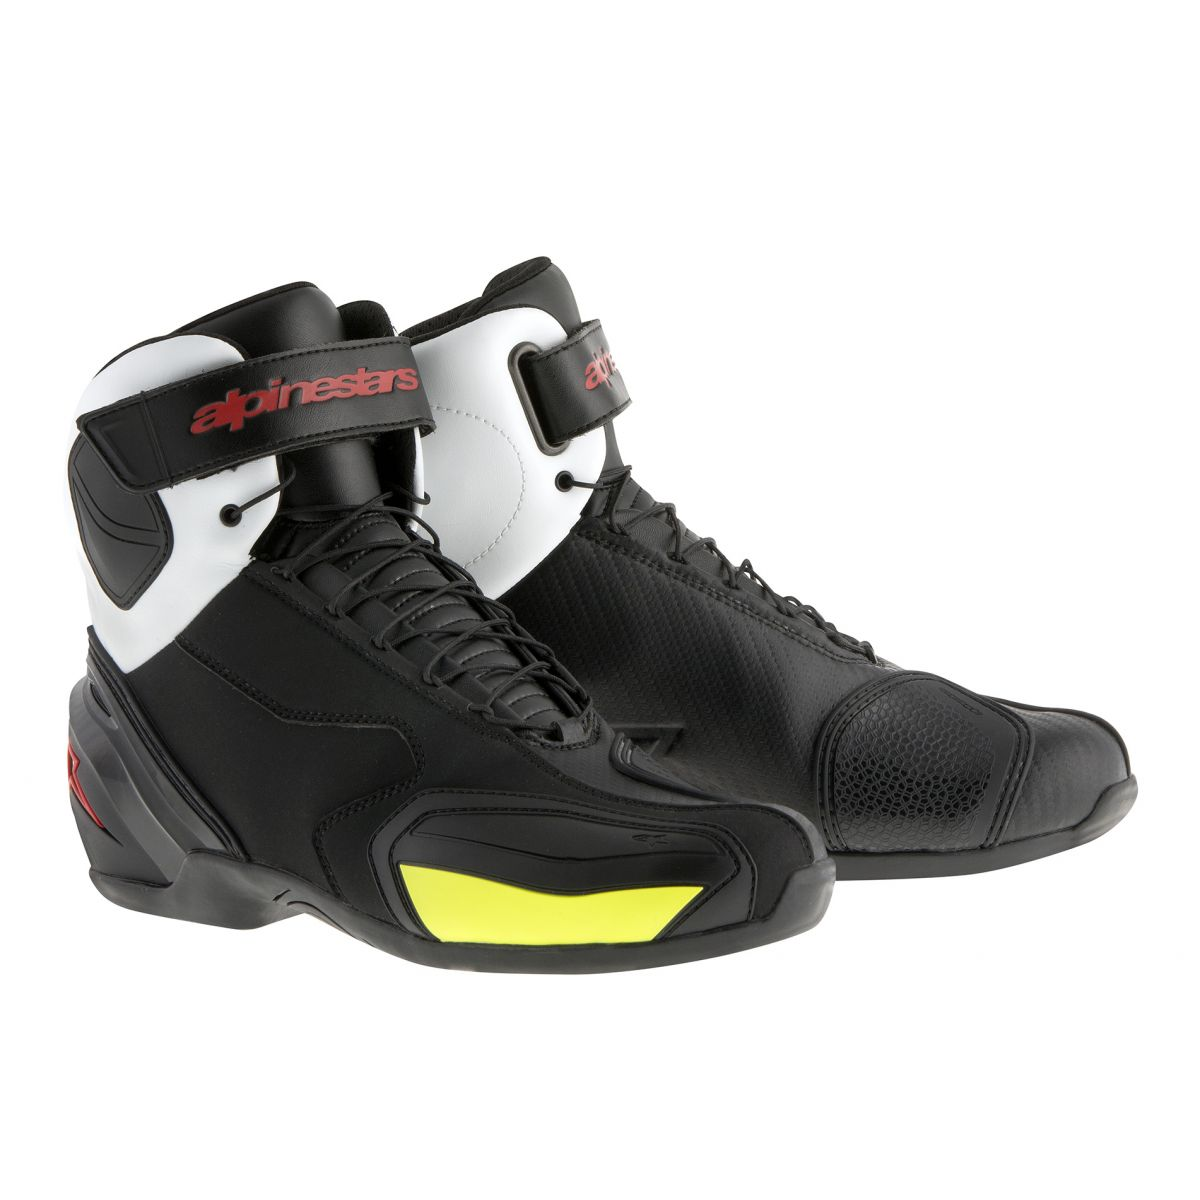 Bota Alpinestars SP-1 Tricolor  - Super Bike - Loja Oficial Alpinestars